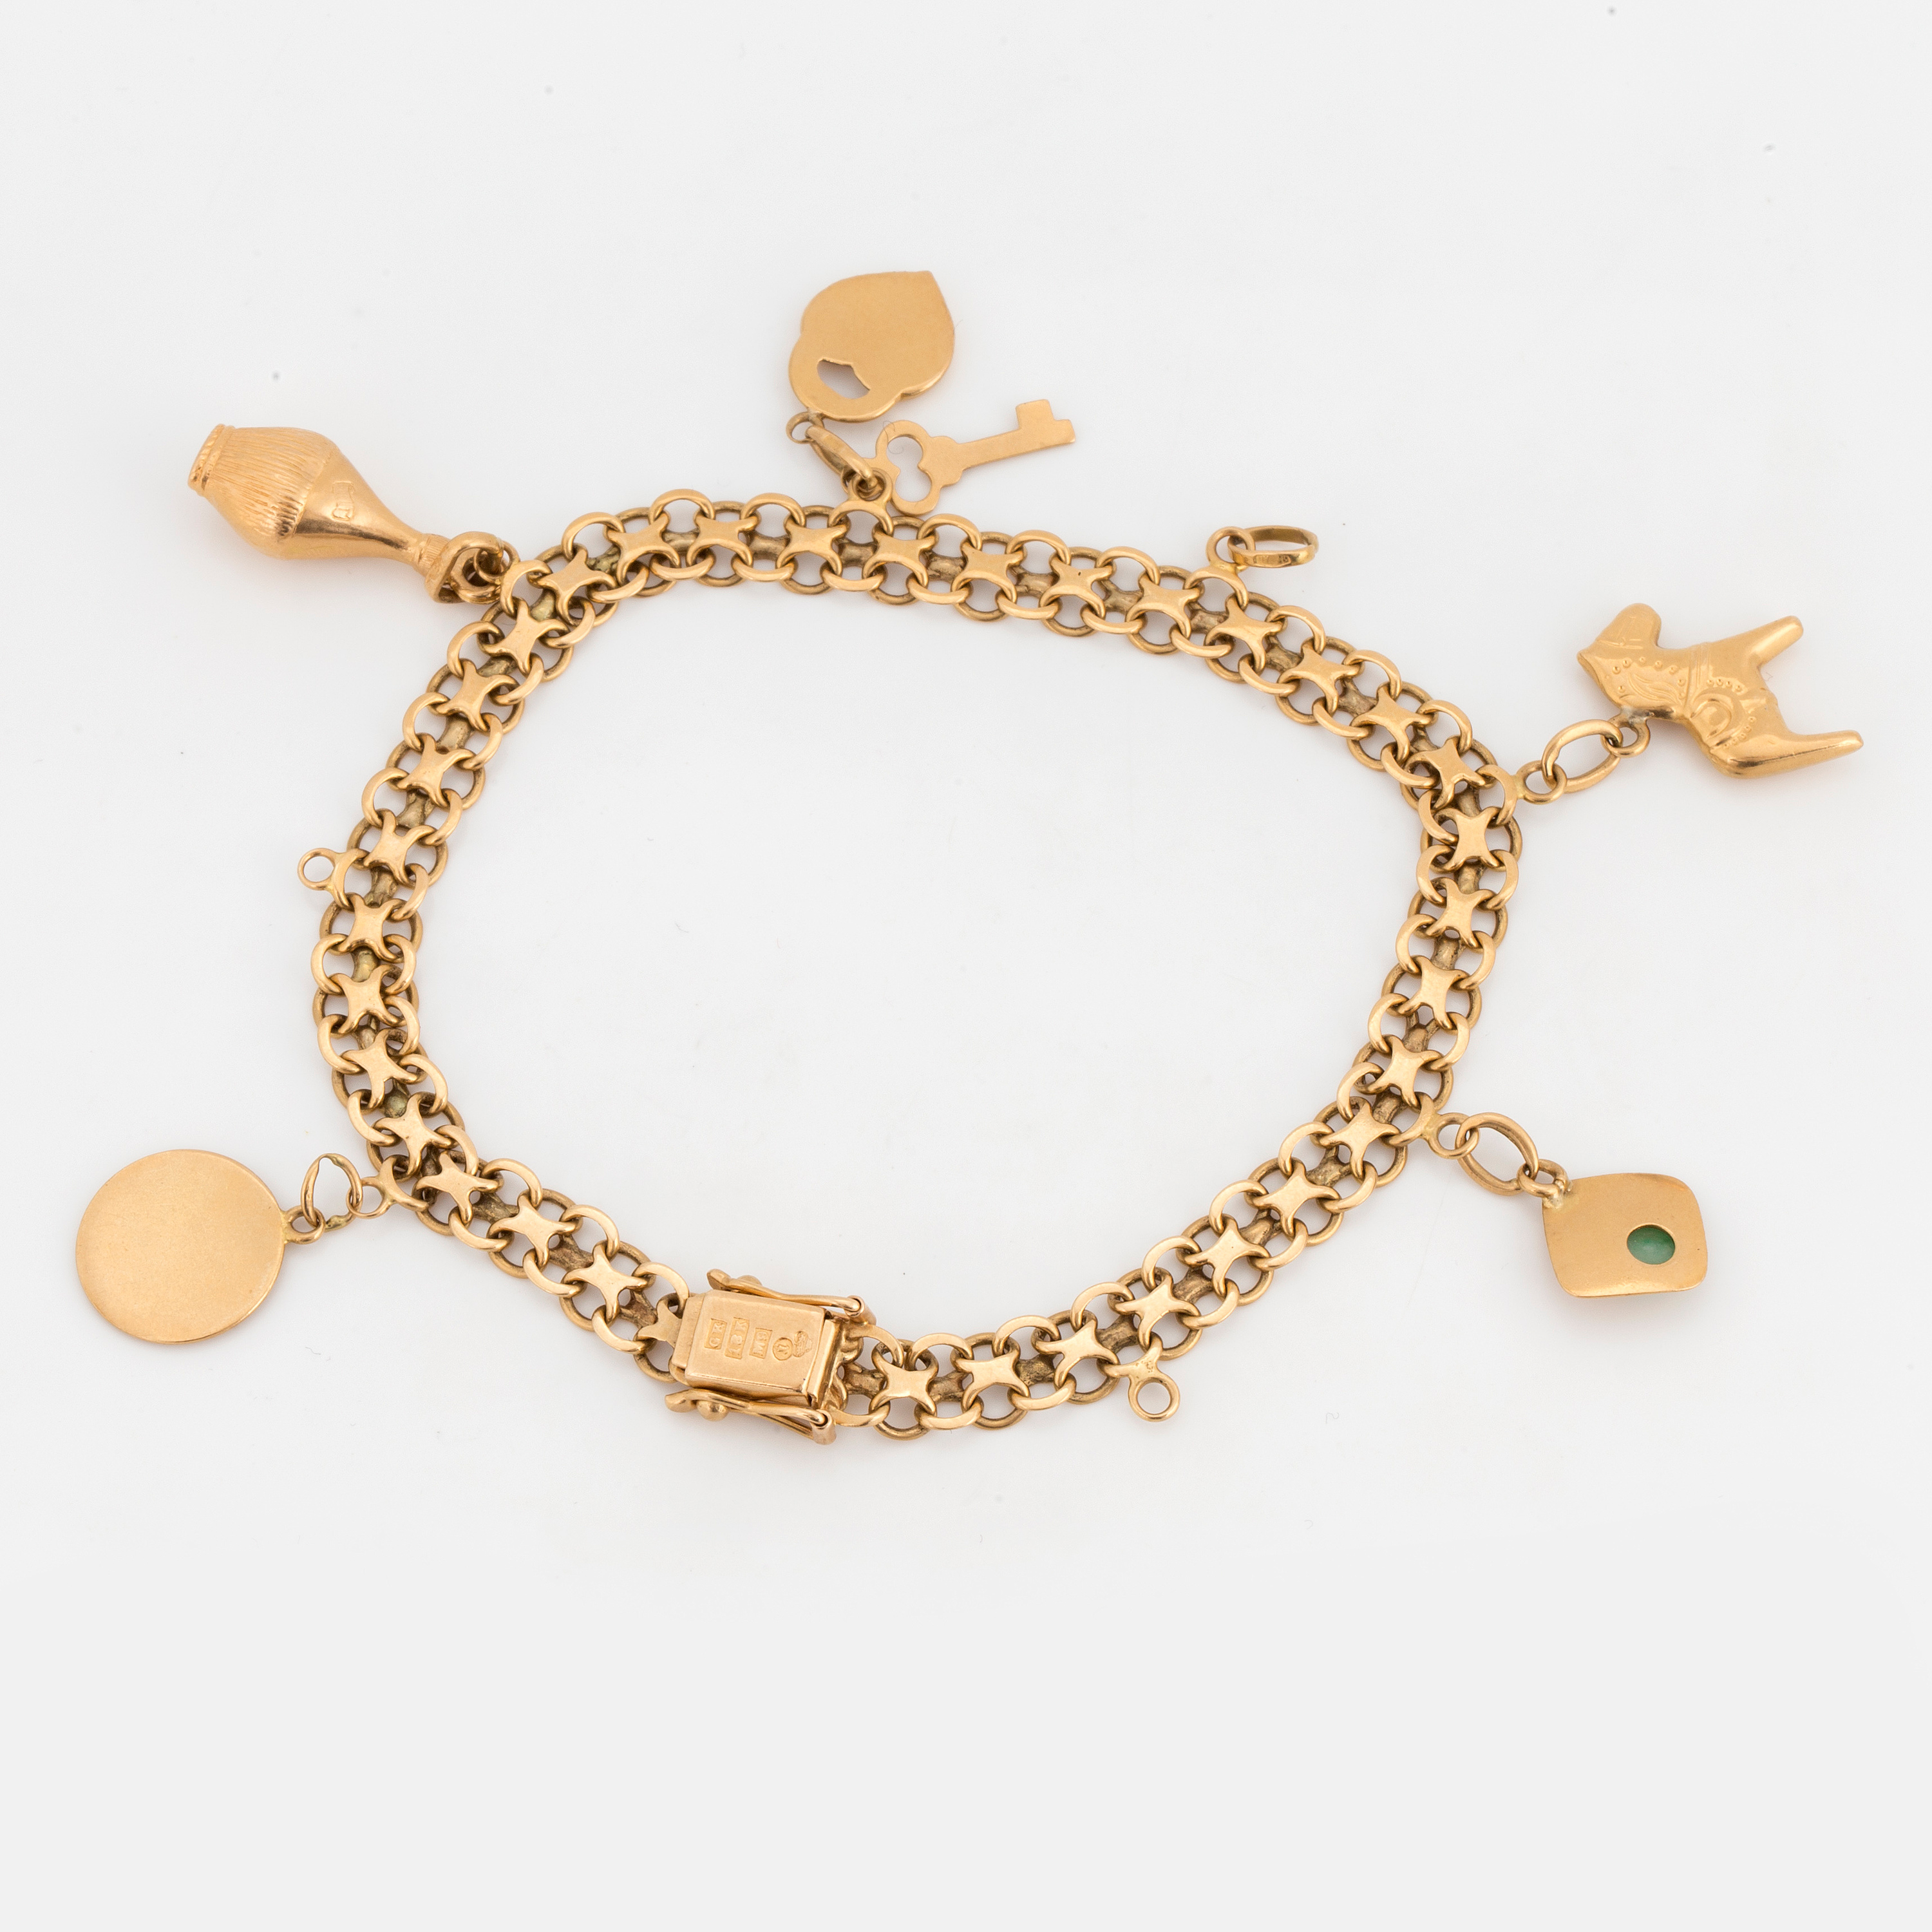 CHARM BRACELET, 18K gold with 5 charms and 3 free loops  - Bukowskis